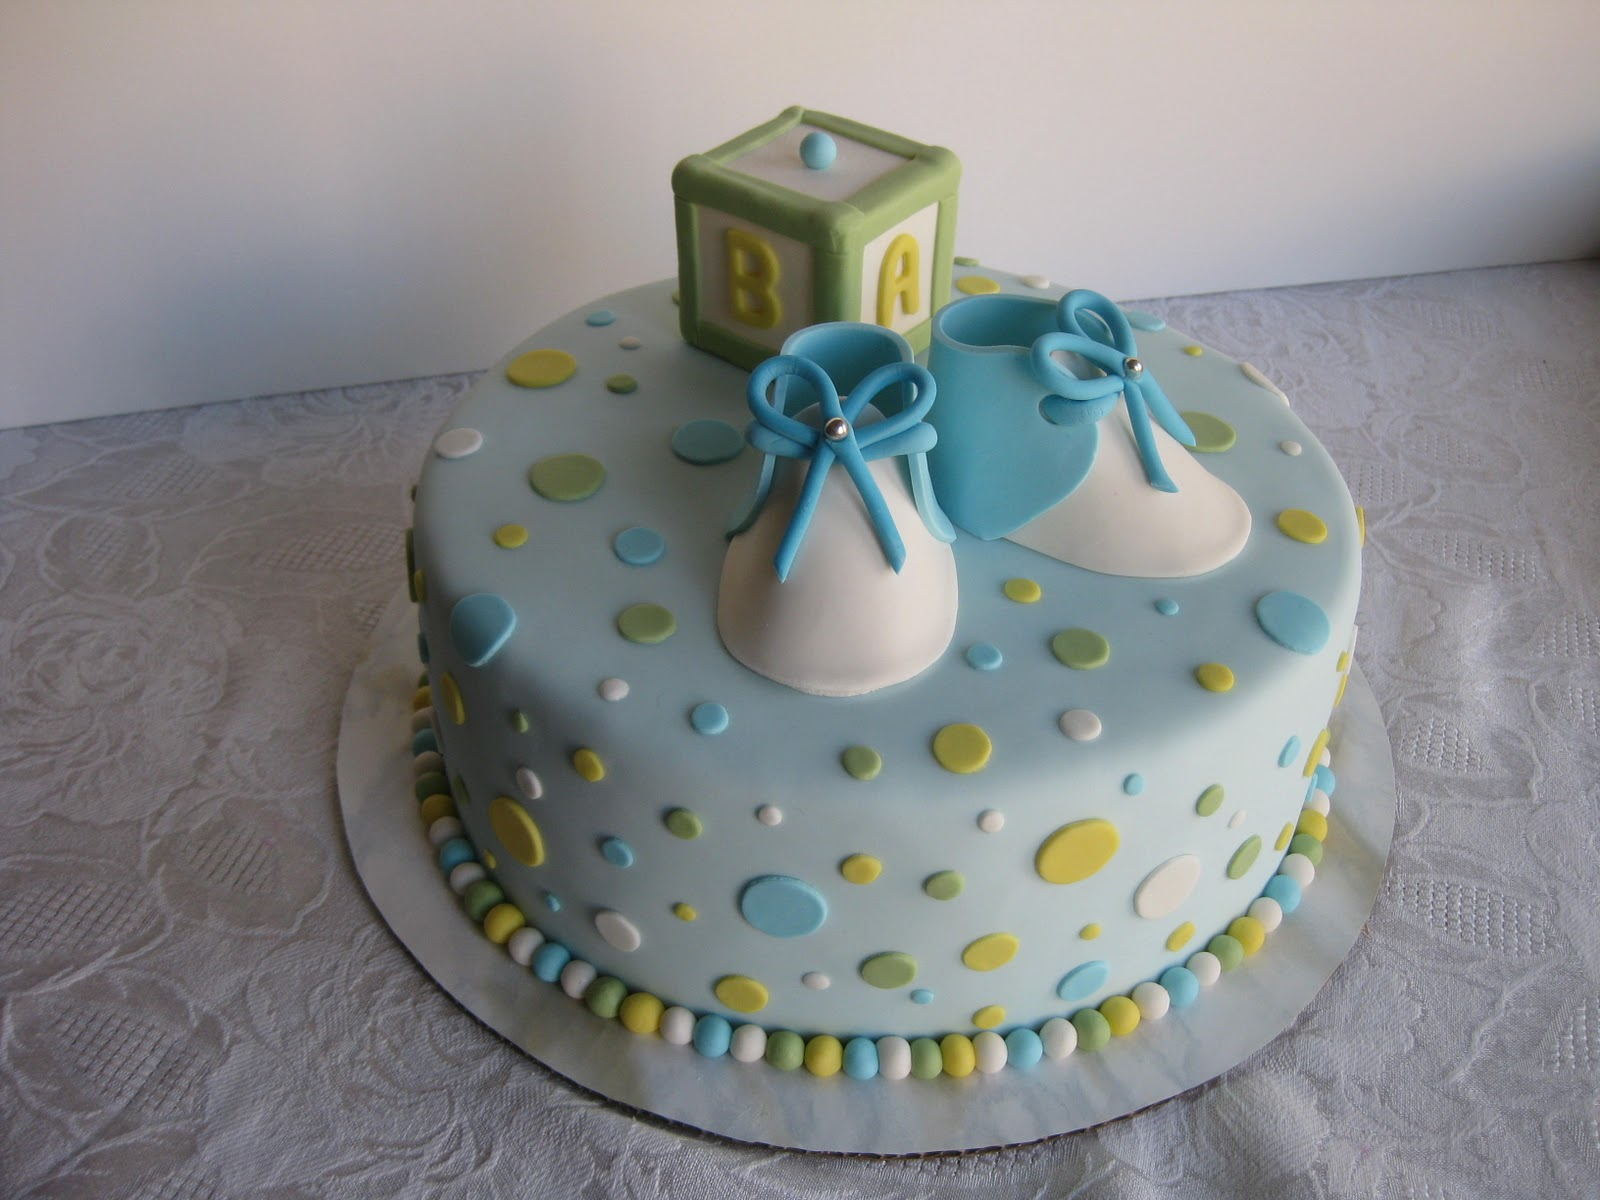 baby shower cakes and cupcakes ideas, Baby shower